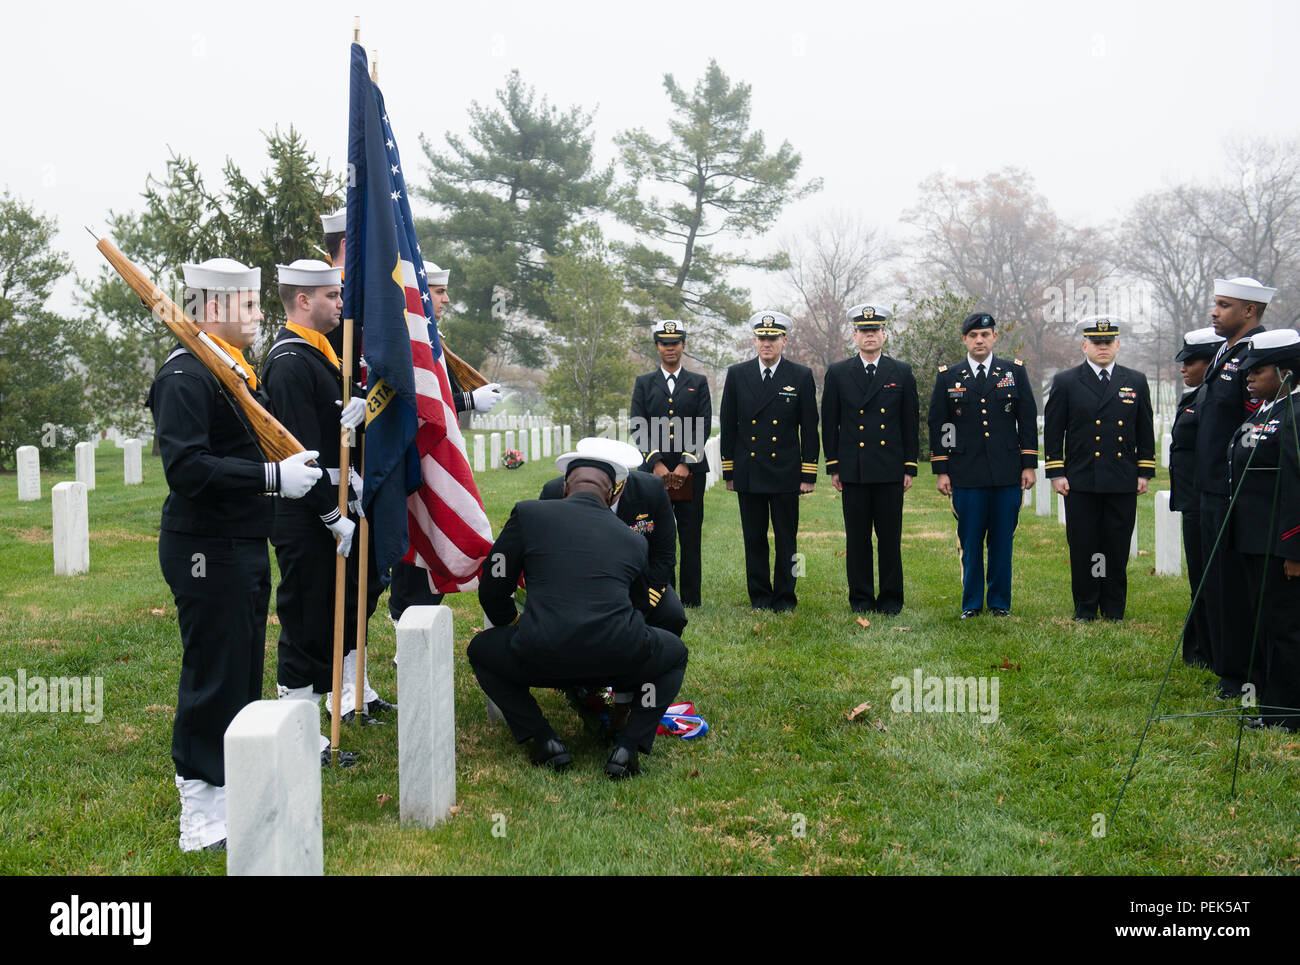 "Capt. Darryl Jackson, commanding officer, Hopper Information Services Center, and Cmdr. Joseph Fraser lay a wreath at the gravesite of U.S. Navy Rear Adm. Grace Hopper during a ceremony at Arlington National Cemetery, Dec. 9, 2015, in Arlington, Va. Hopper was a pioneering computer scientist and was nicknamed ""Amazing Grace."" (U.S. Army photo by Rachel Larue/Arlington National Cemetery/released) - Stock Image"